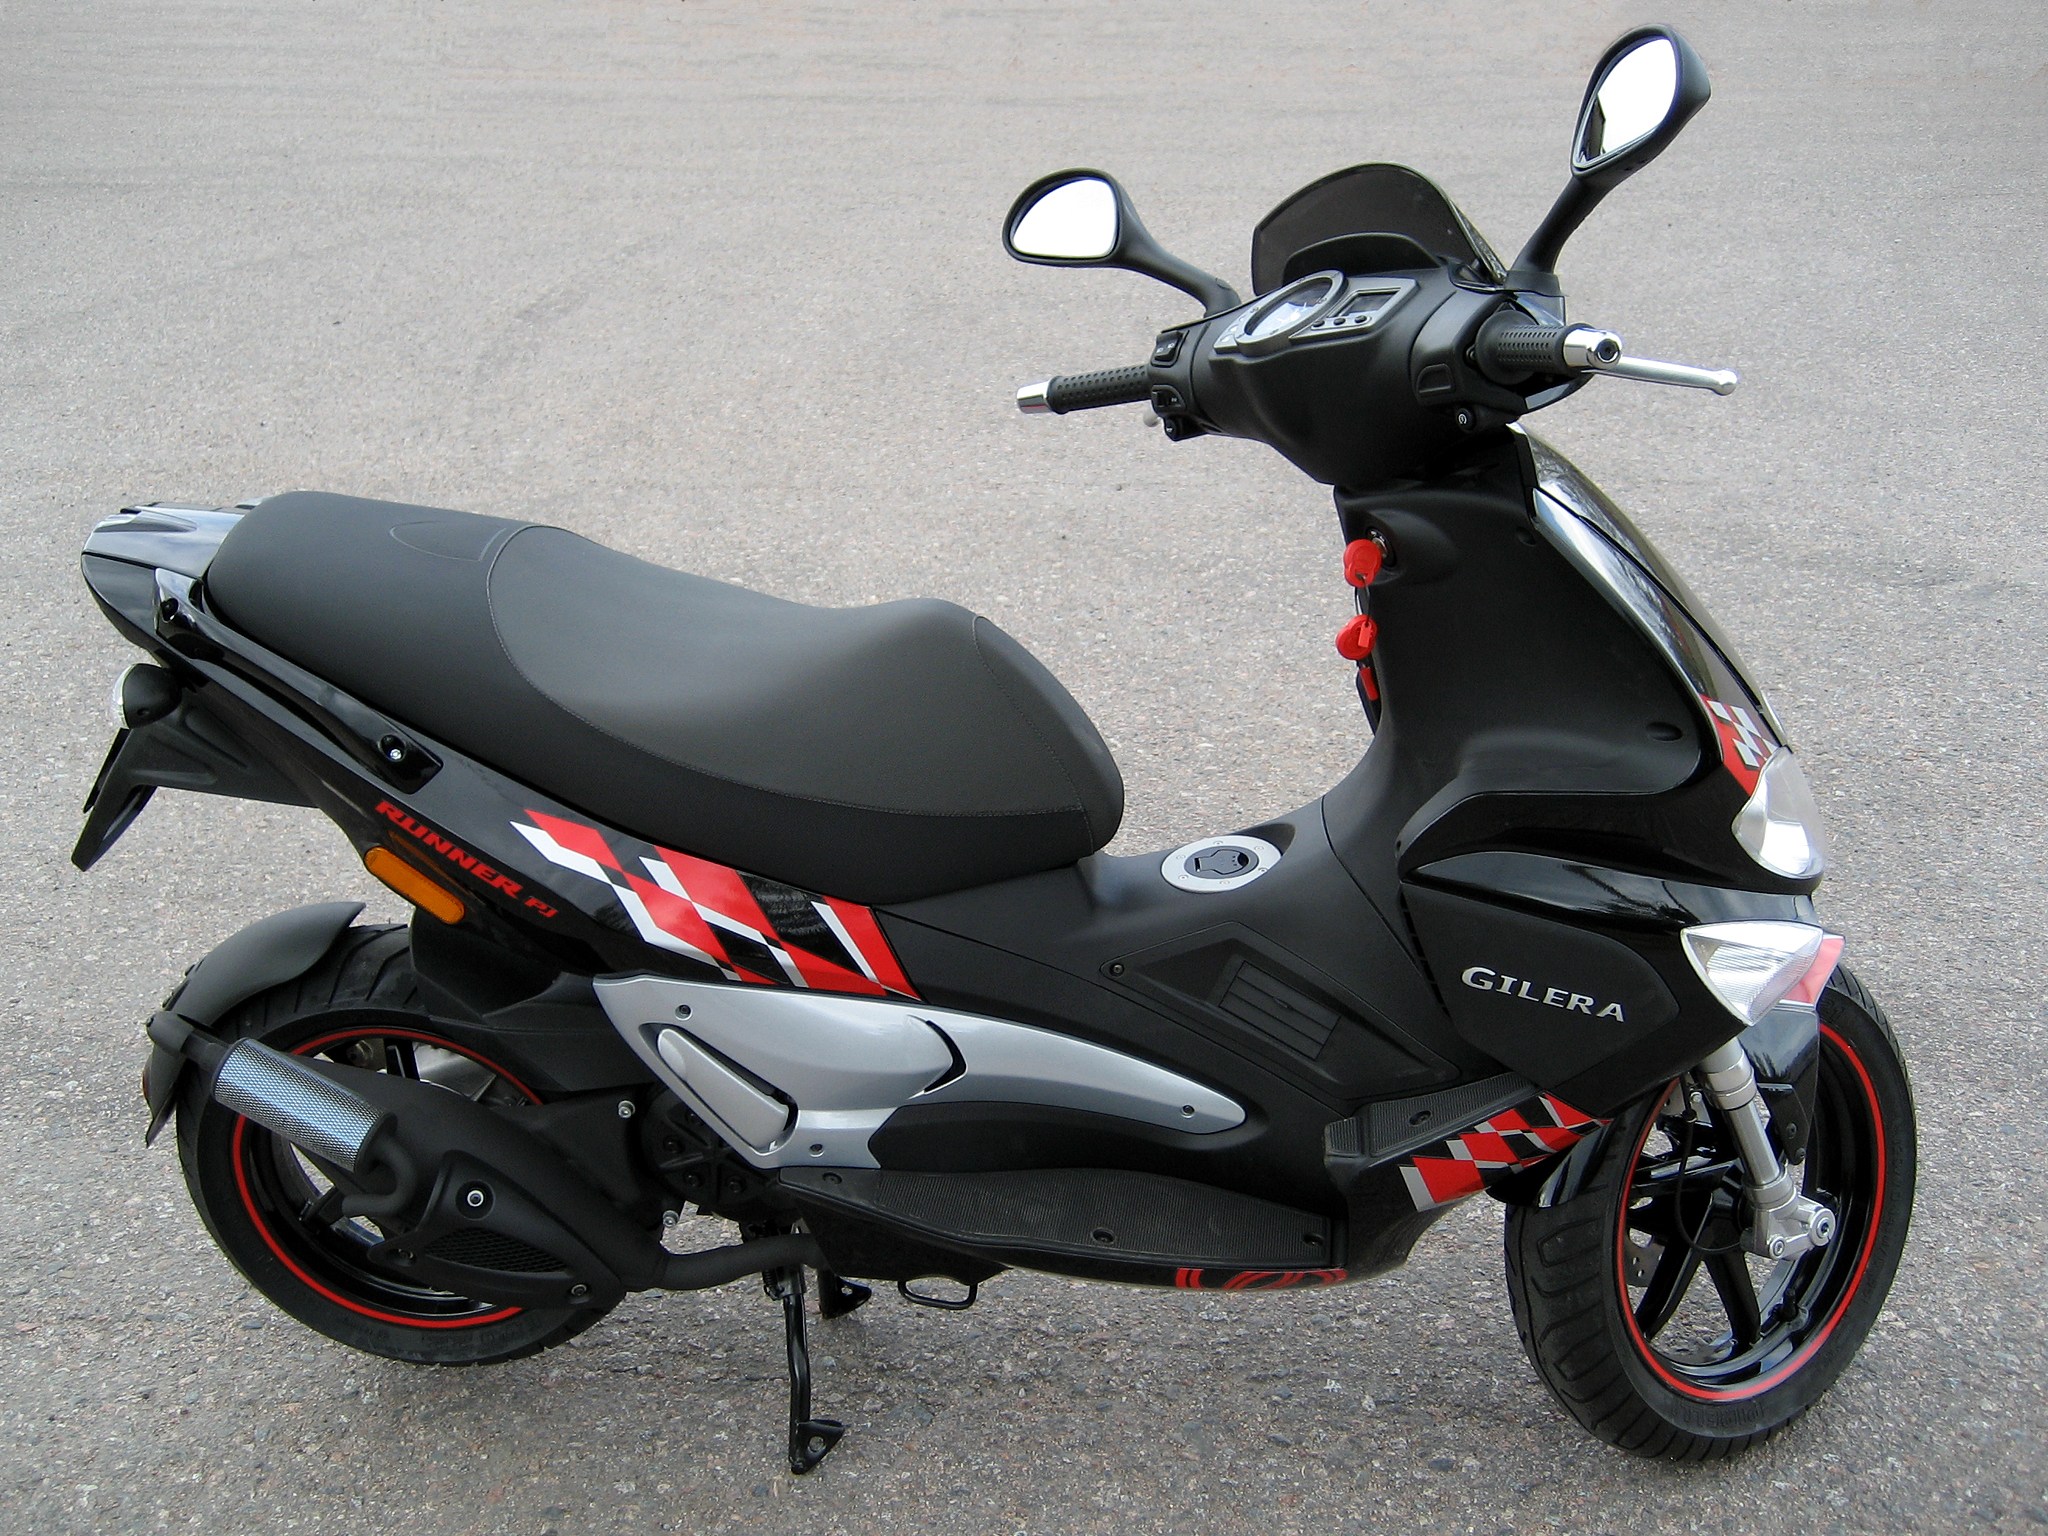 Gilera Runner 50 Black Soul 2015 images #76494